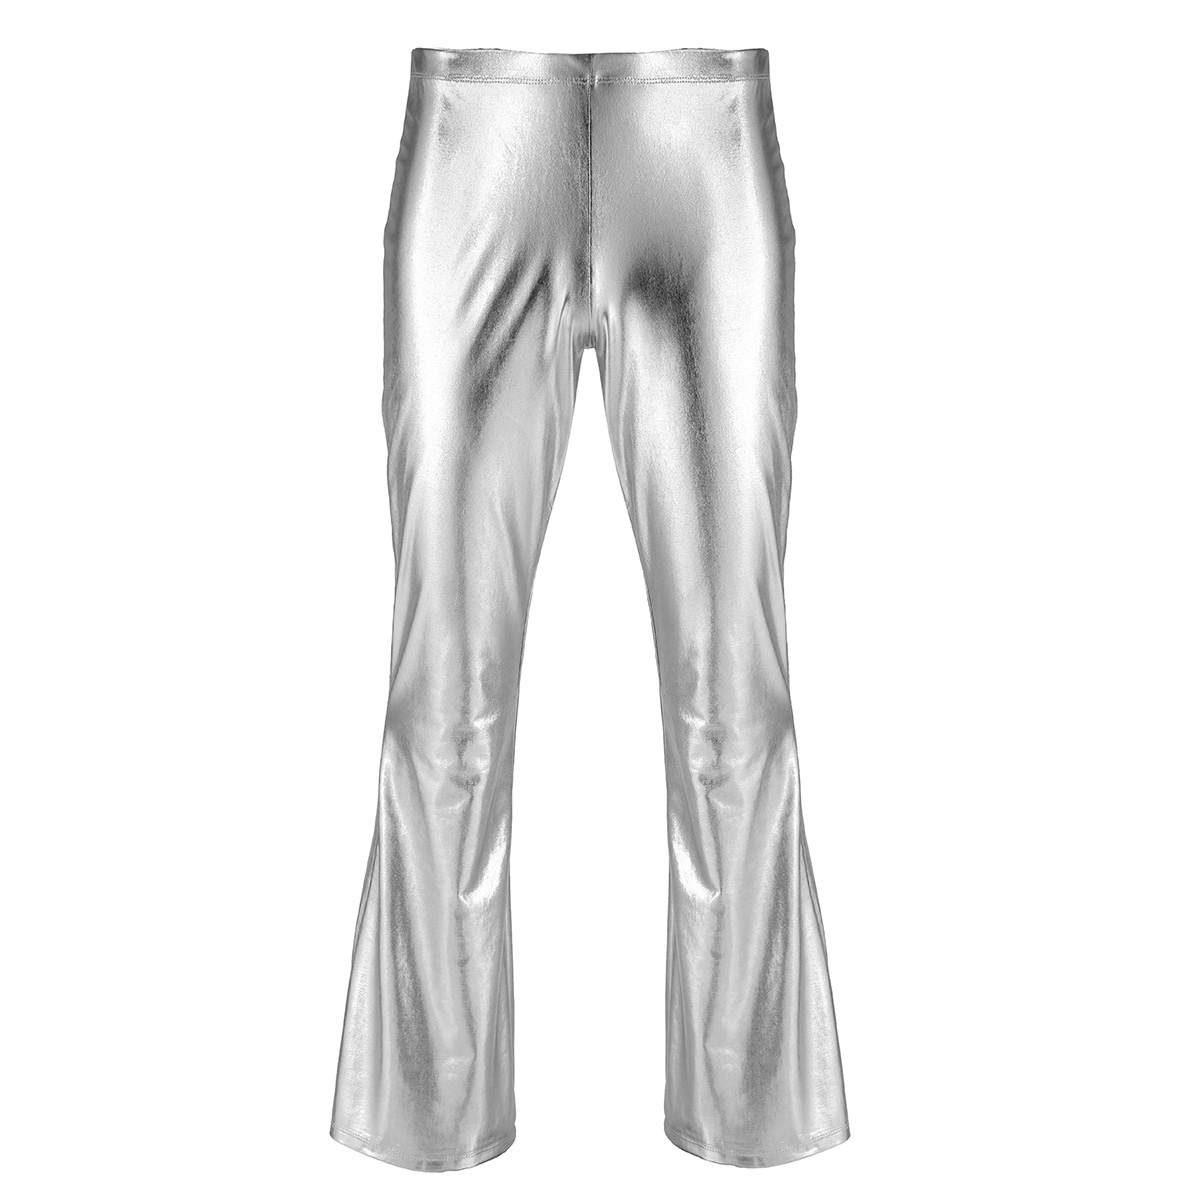 ChicTry Adults Mens Shiny Metallic Disco Pants with Bell Bottom Flared Long Pants Dude Costume Trousers for 70's Theme Parties 28